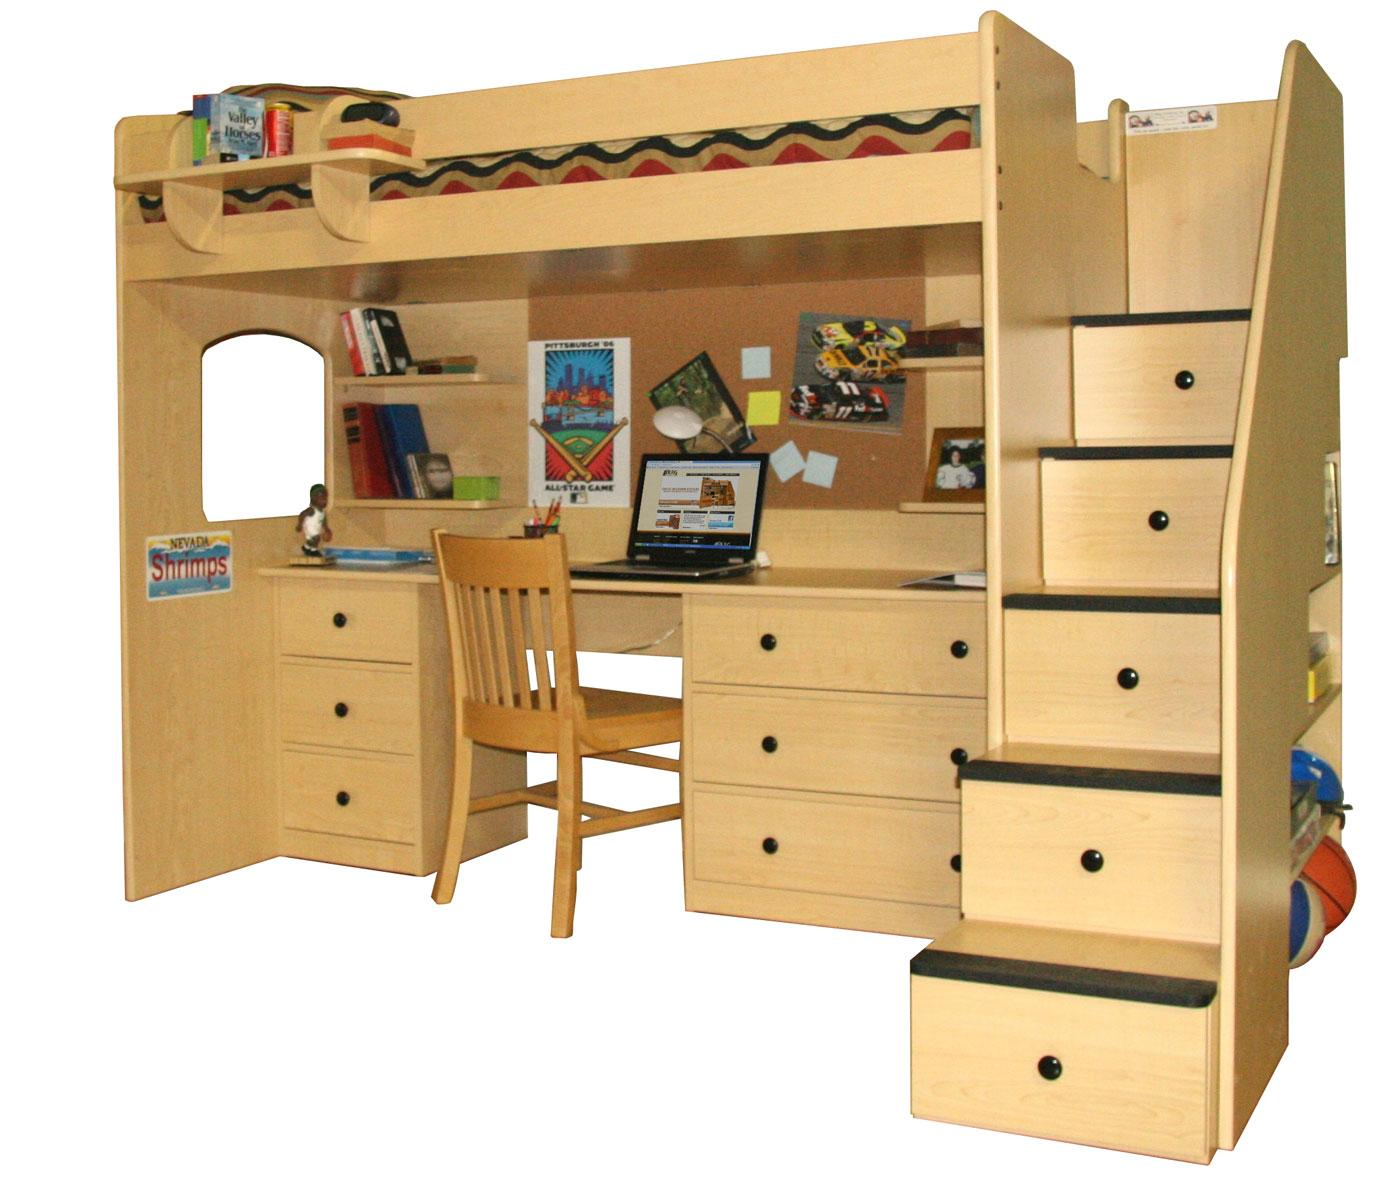 Bunk bed plans free bed plans diy blueprints for Bunk bed design ideas